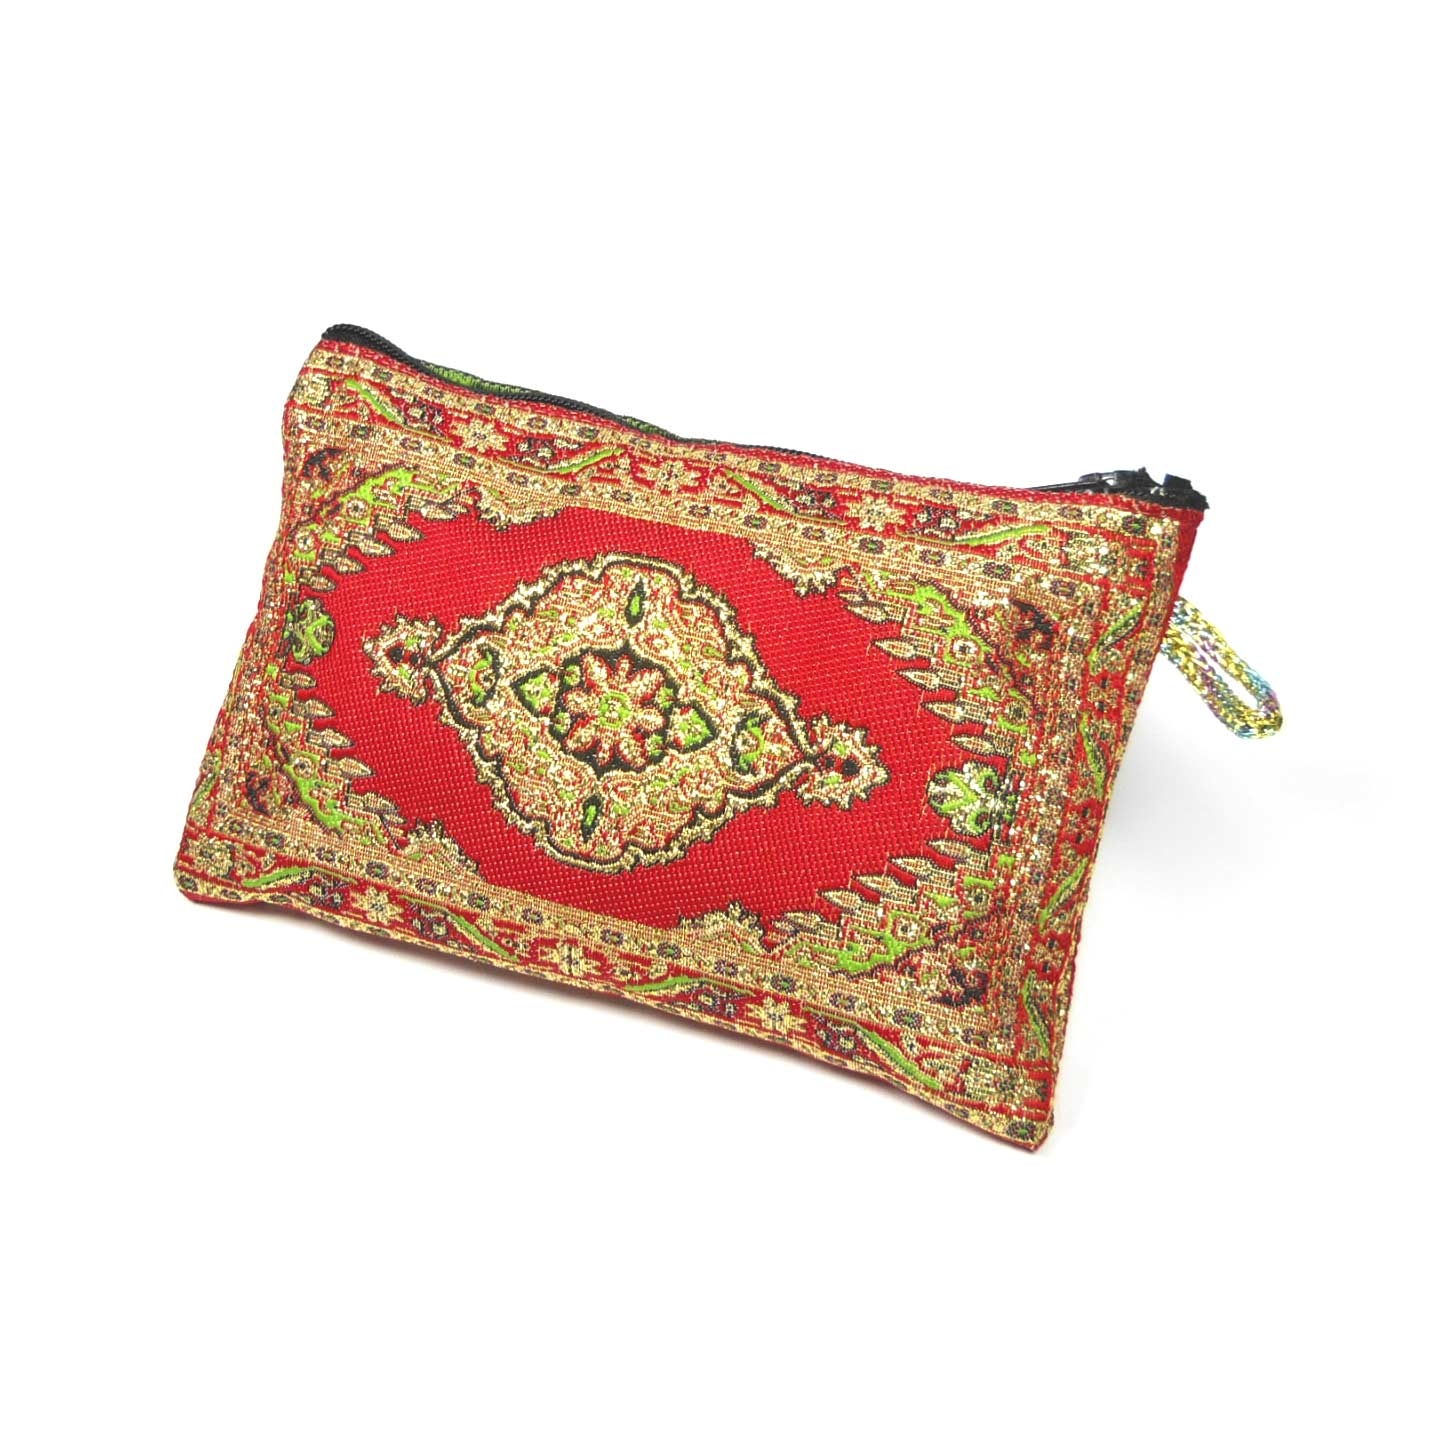 Wallet Purse Cosmetic Bag Turkish Stamping For Different Uses (15x9 Cm)